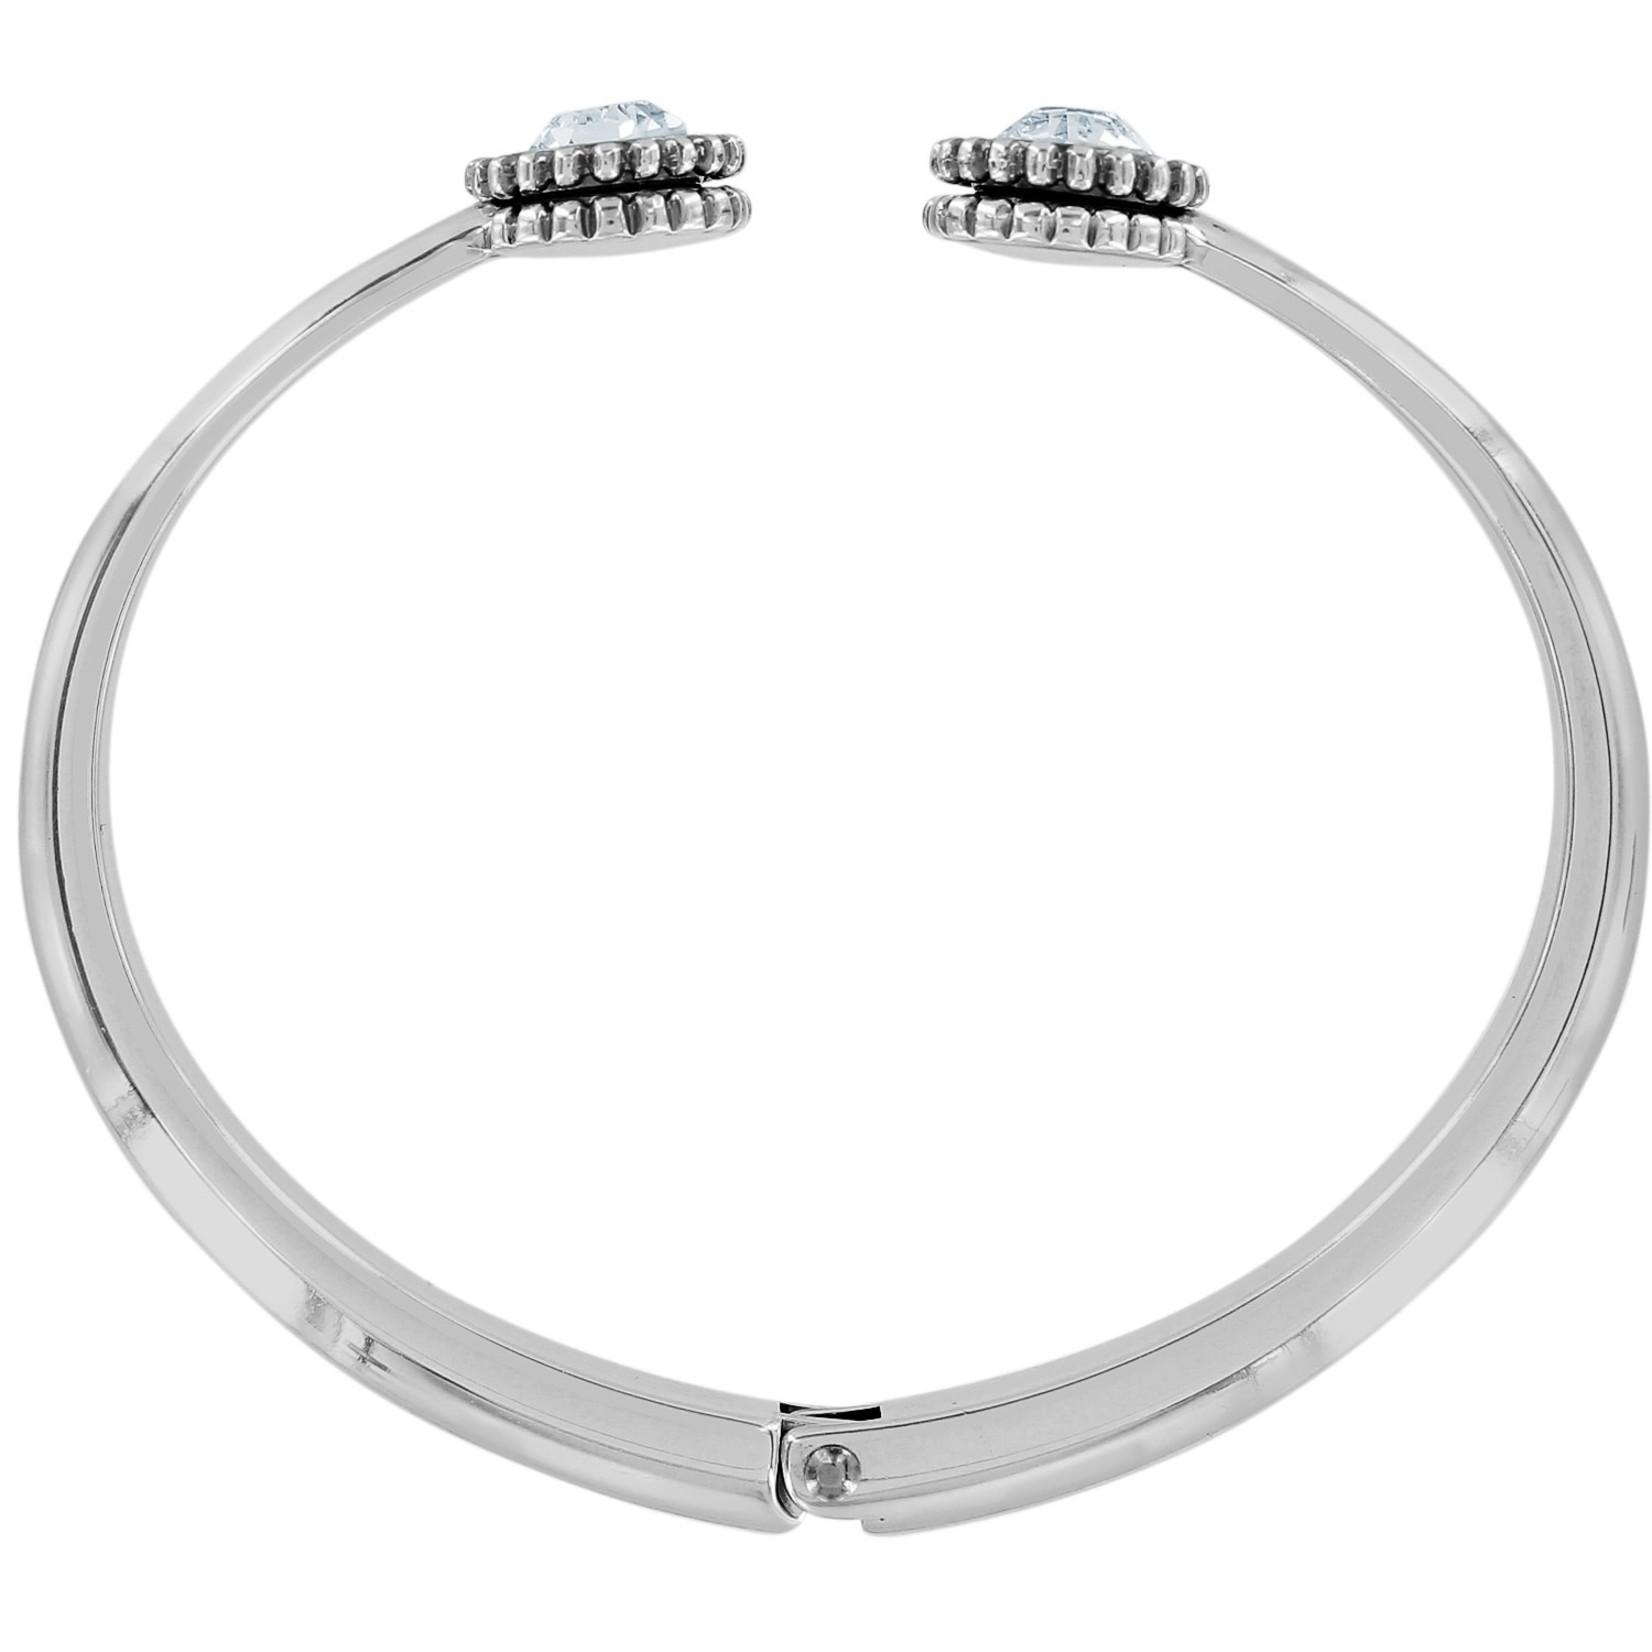 Brighton JF5251 Twinkle Open Hinged Bangle